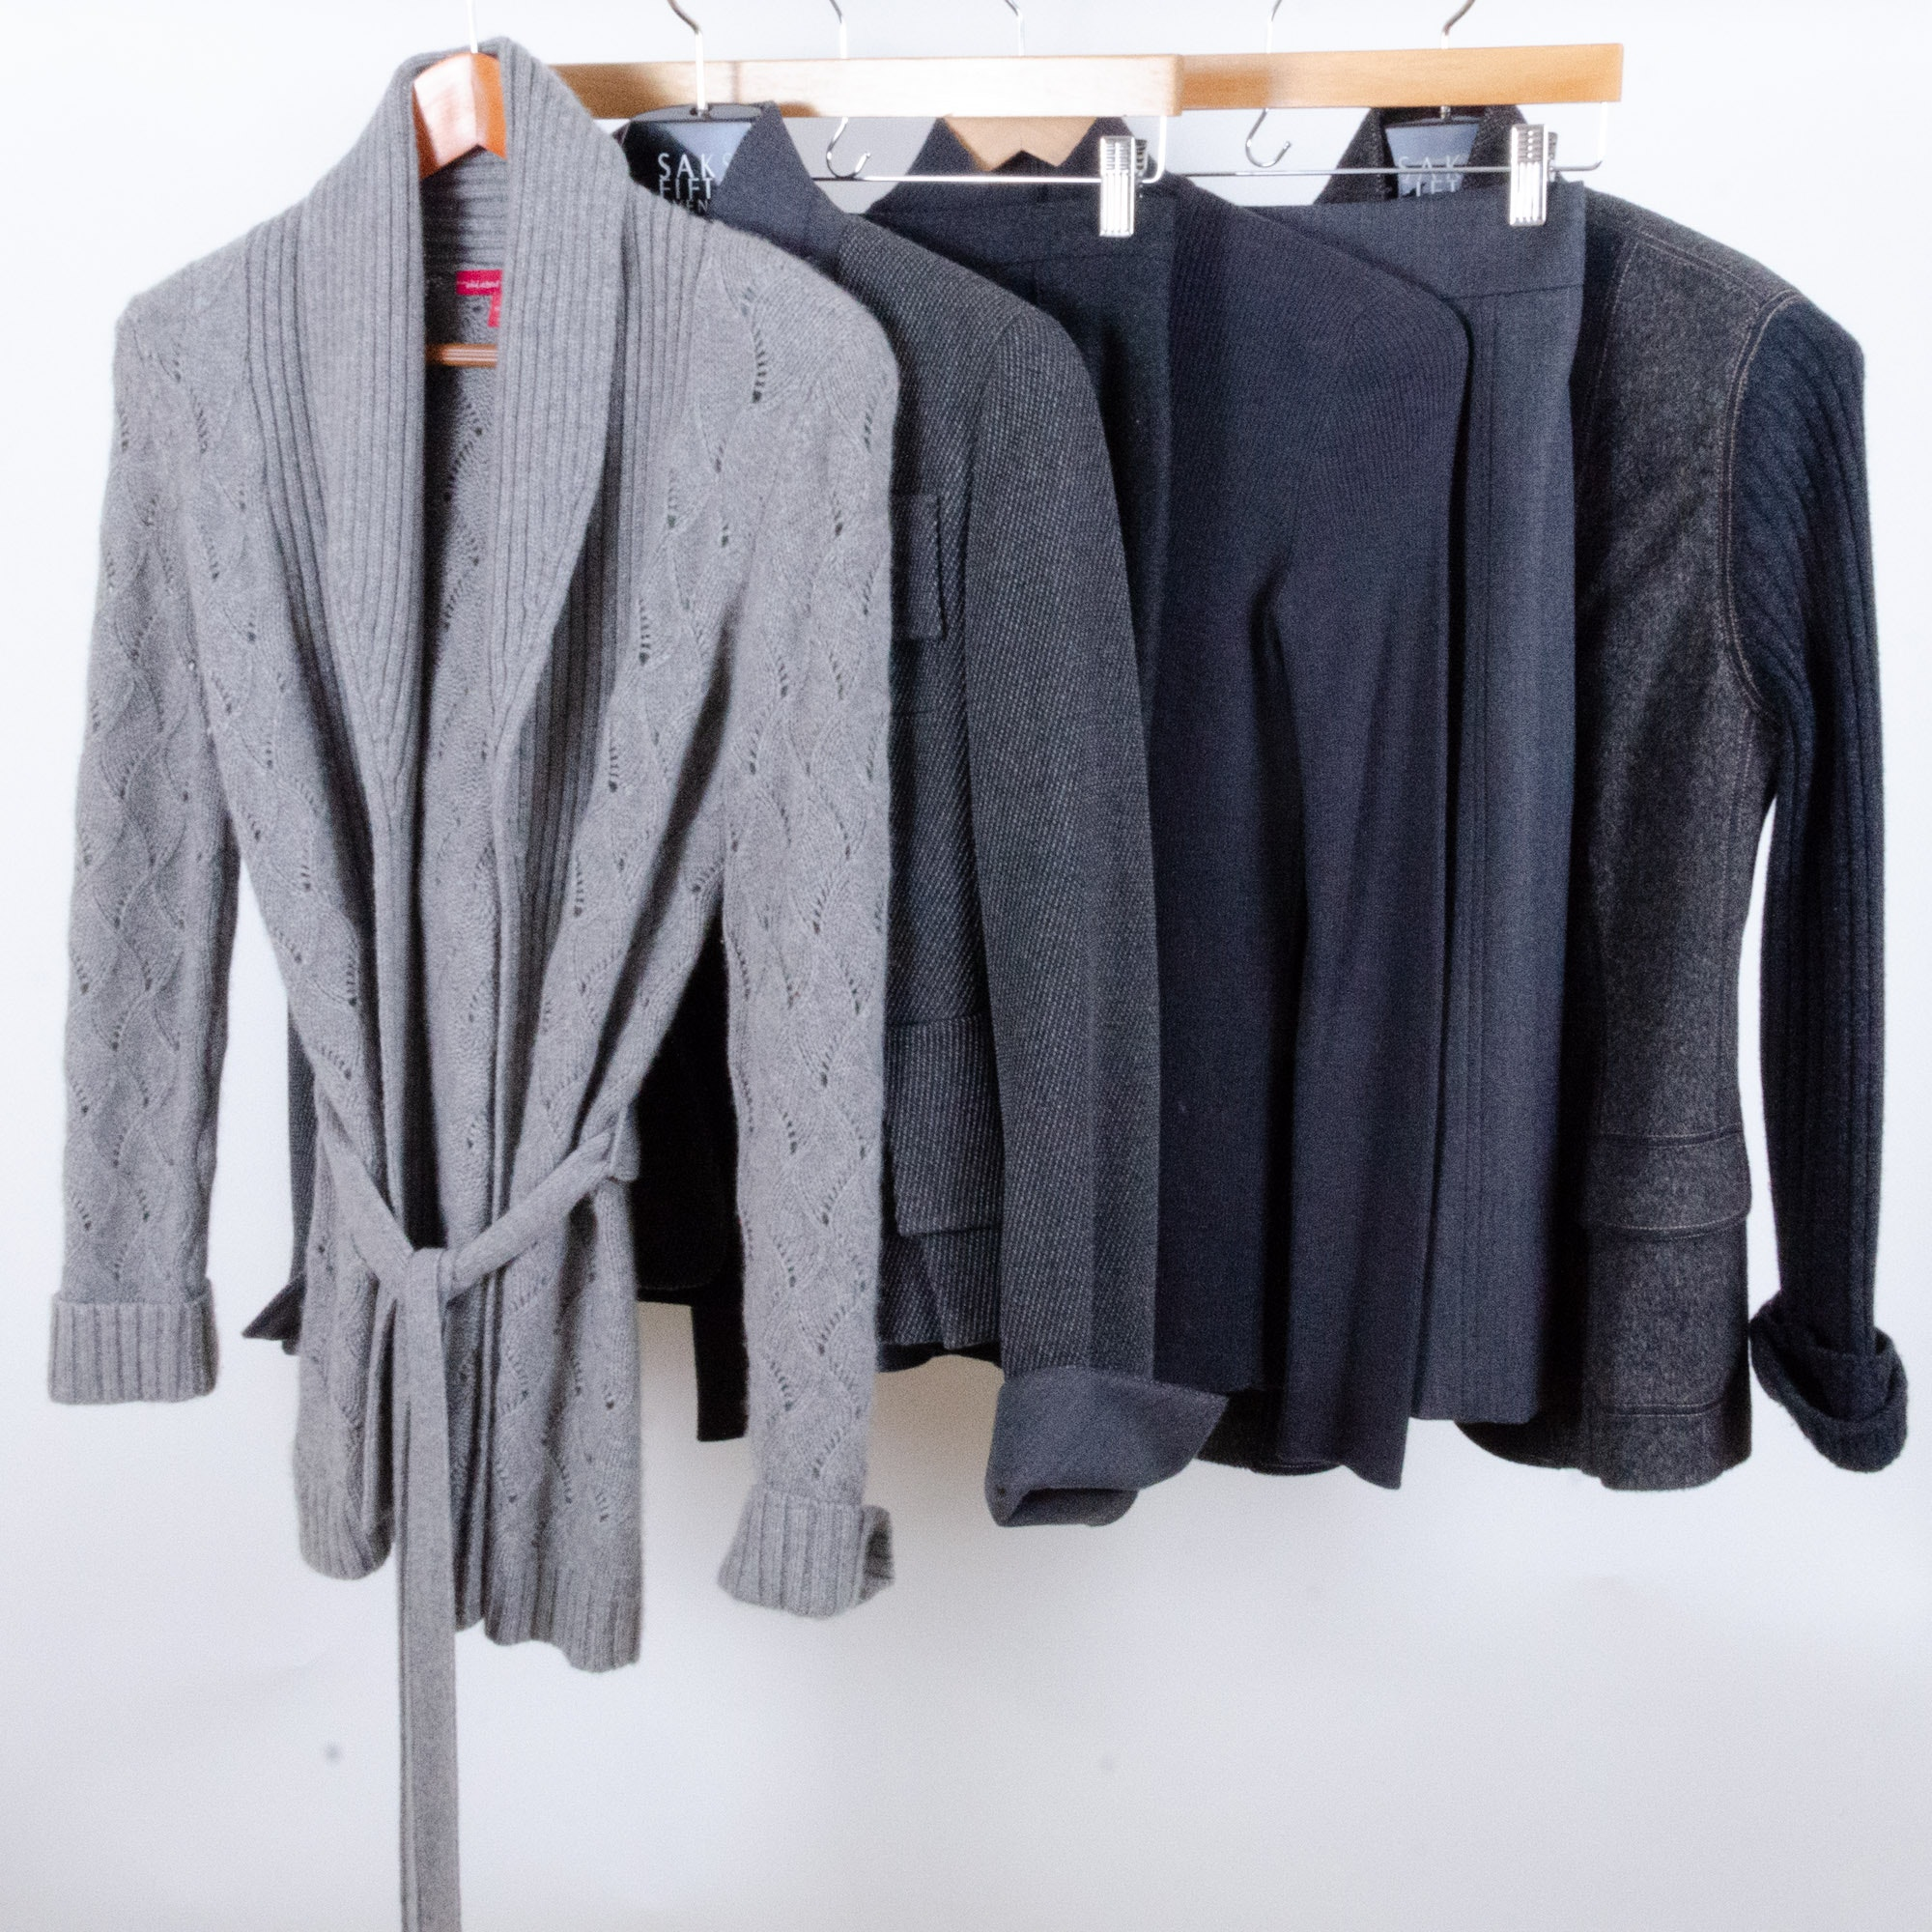 Saks, Akris Punto, and Escada Wool Jackets and Skirts with Cashmere Sweater